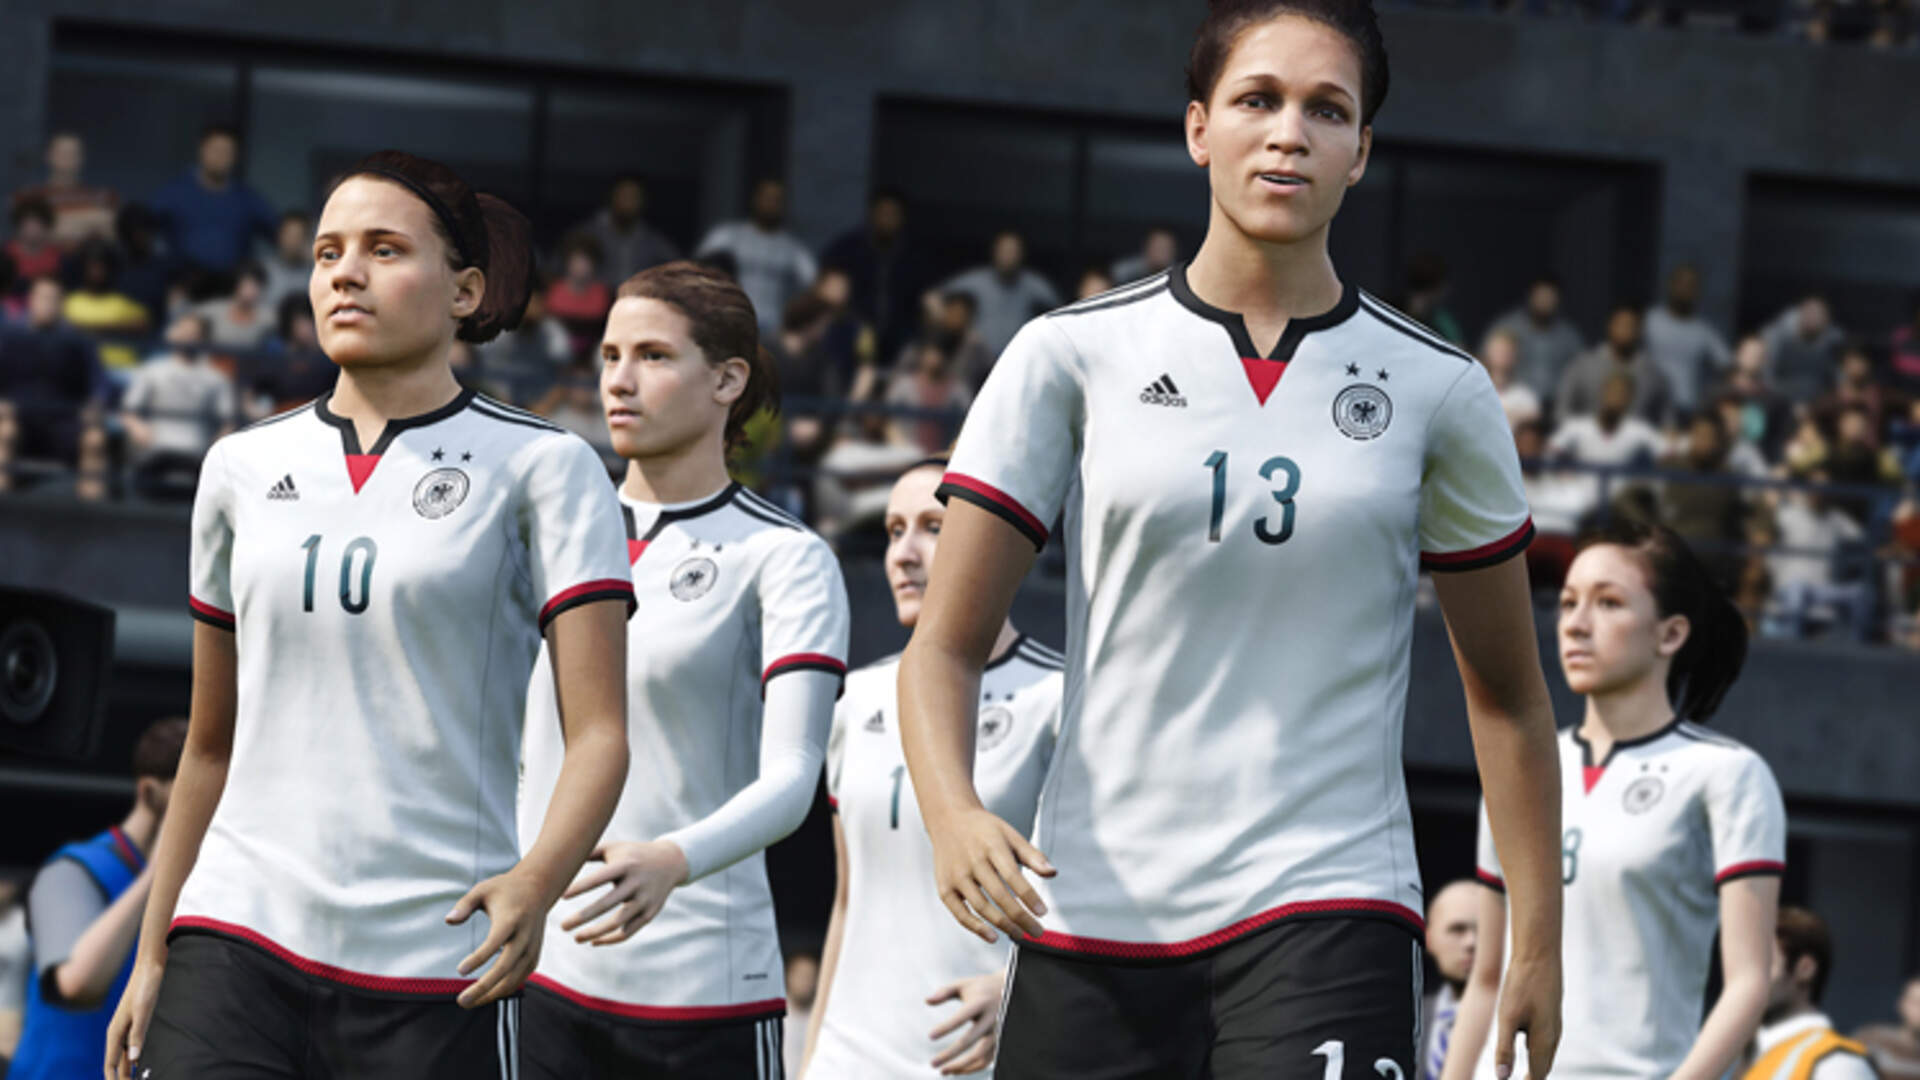 Women's Teams Are Finally Playable in FIFA 16, but There's Still Work to Be Done